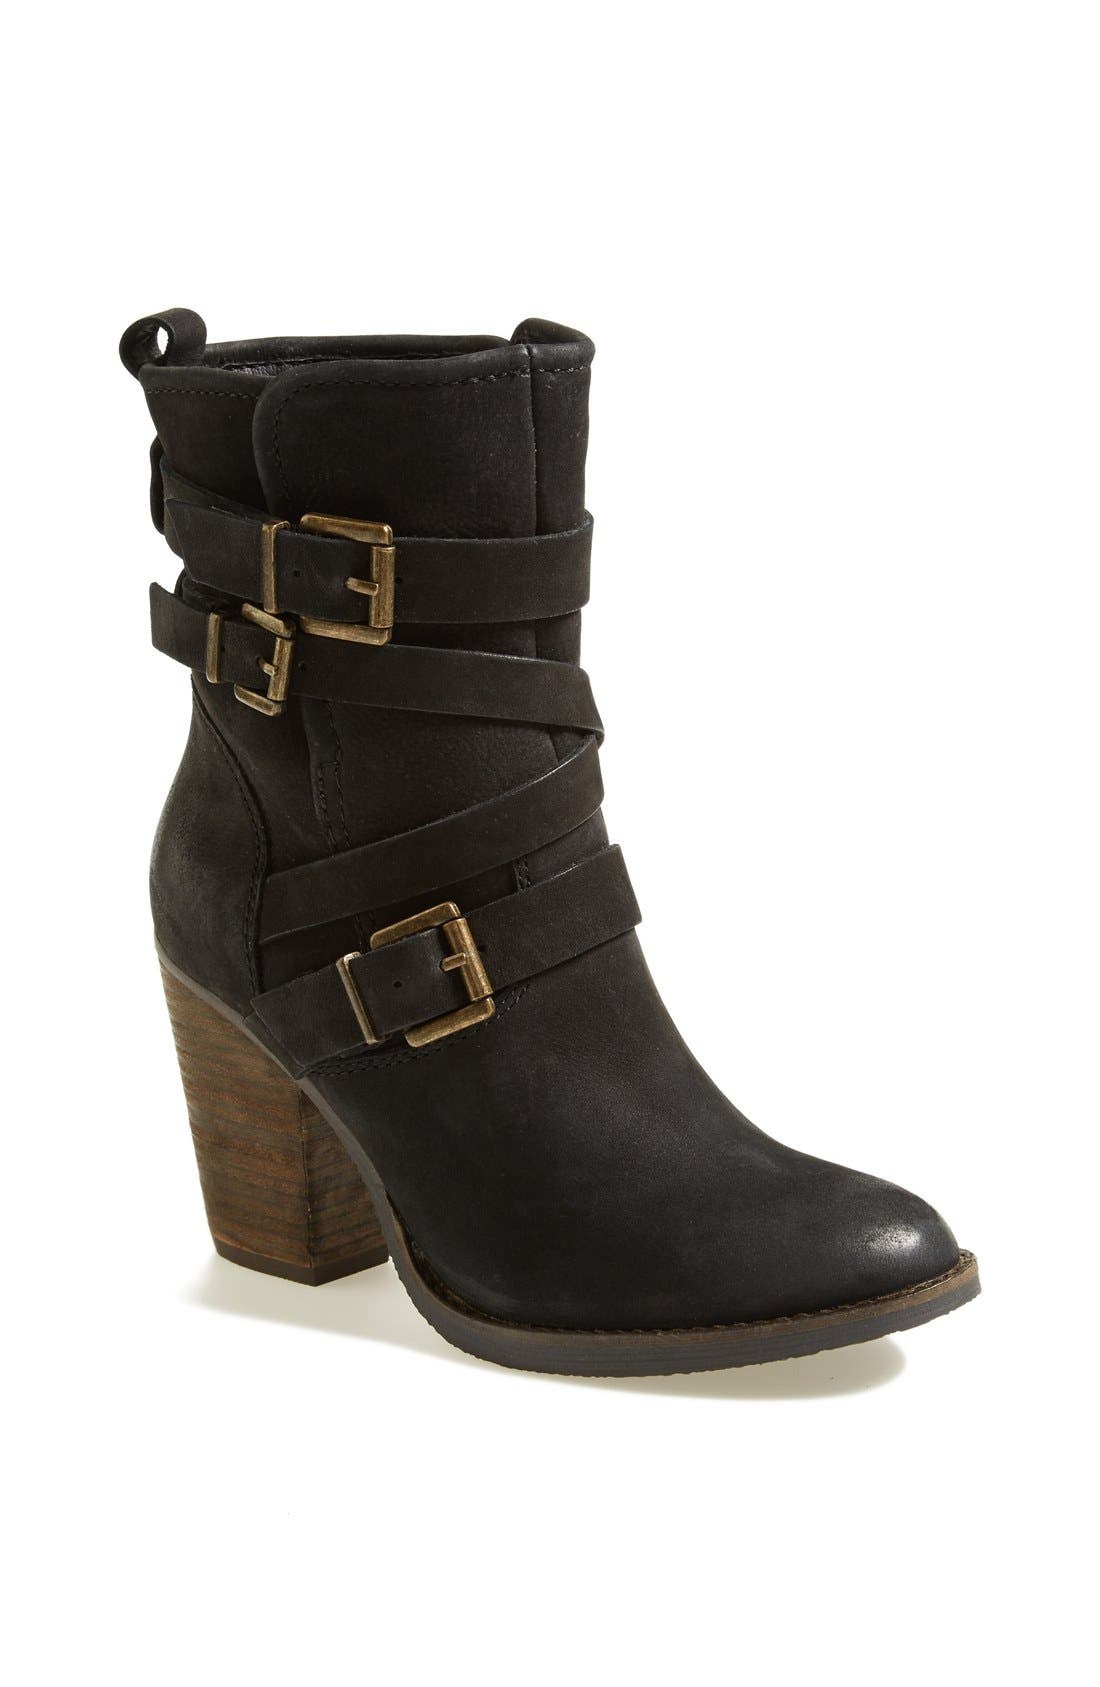 Alternate Image 1 Selected - Steve Madden 'Yale' Belted Boot (Women)